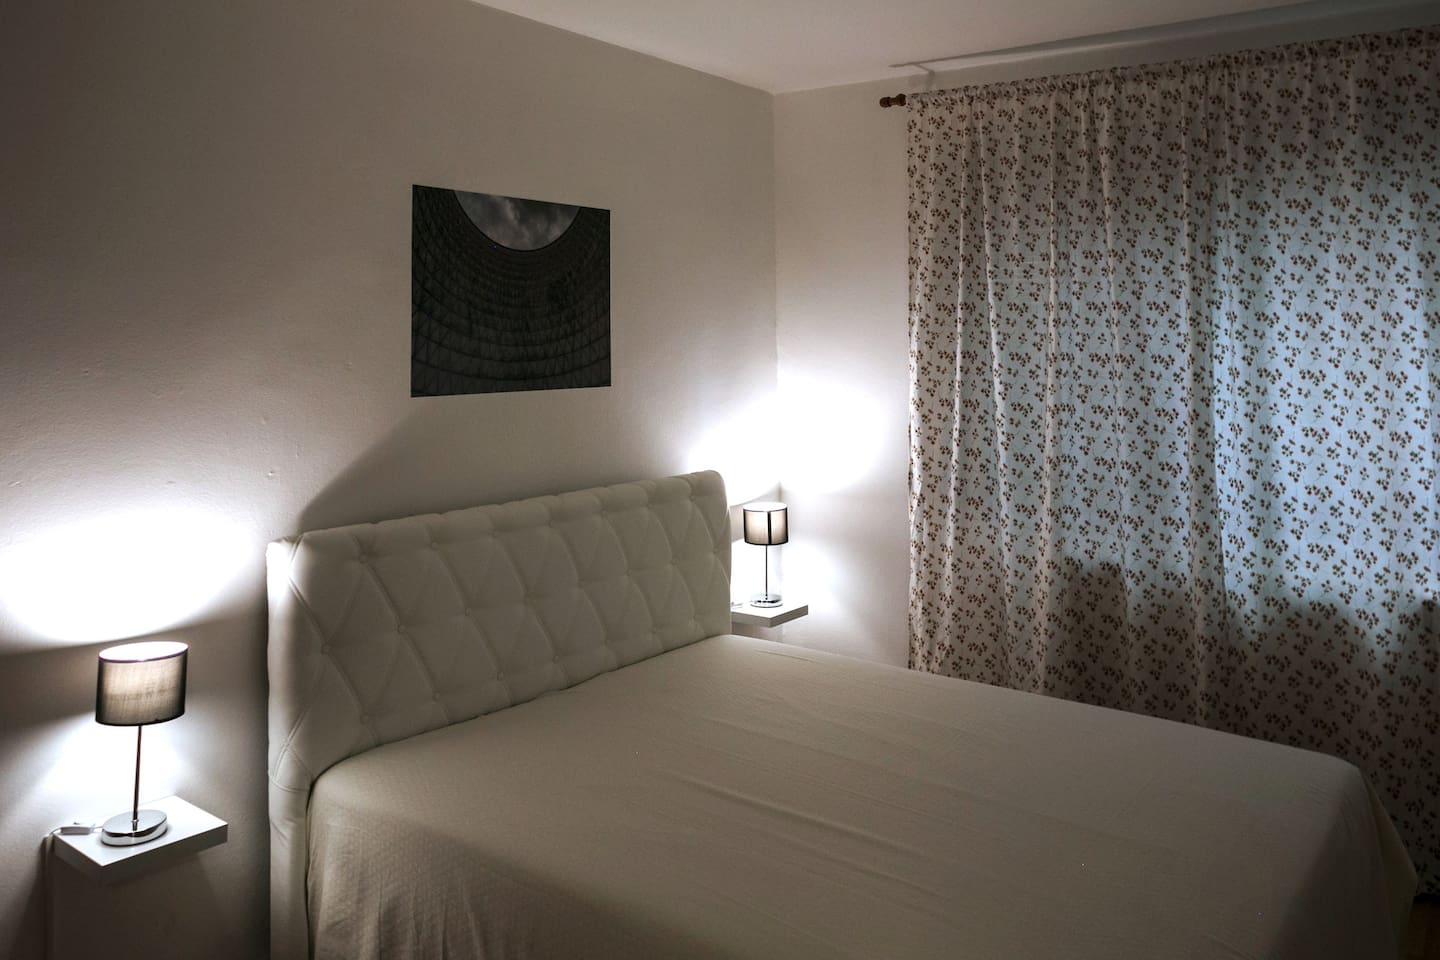 Detail of the master bedroom with full size double bed.